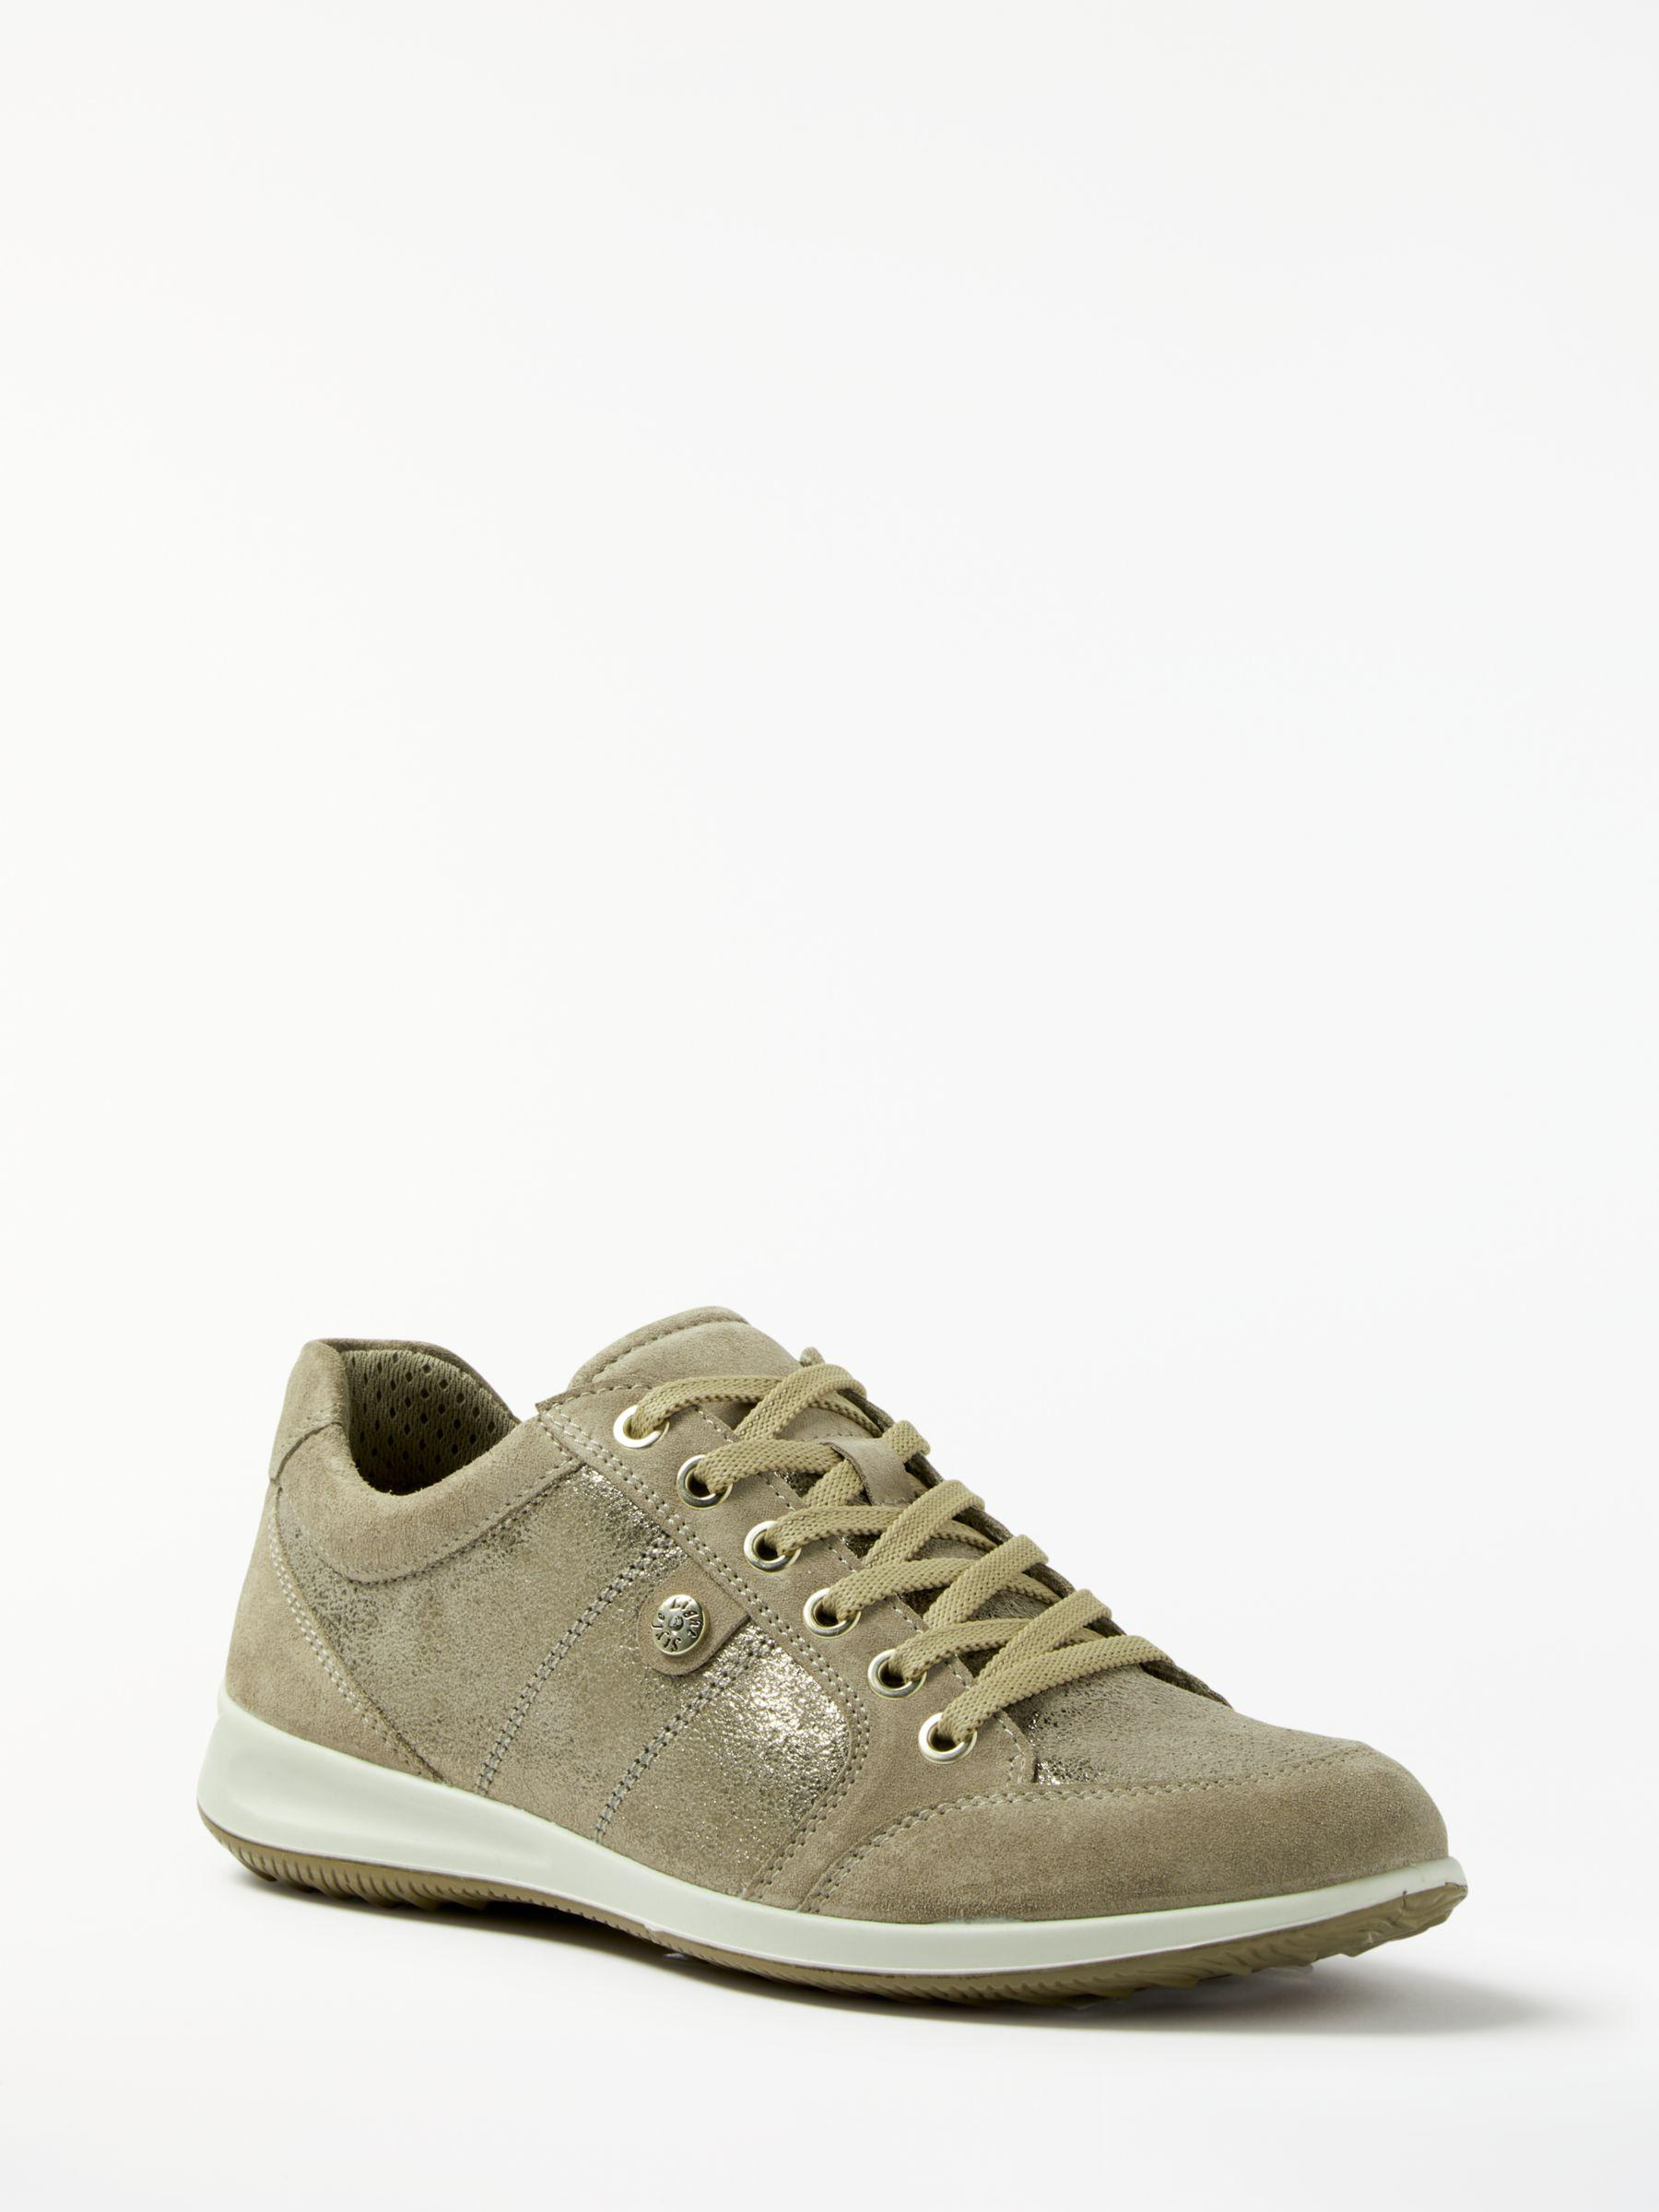 f57659a89c10 John Lewis Designed For Comfort Elyse Lace Up Trainers in Natural - Lyst